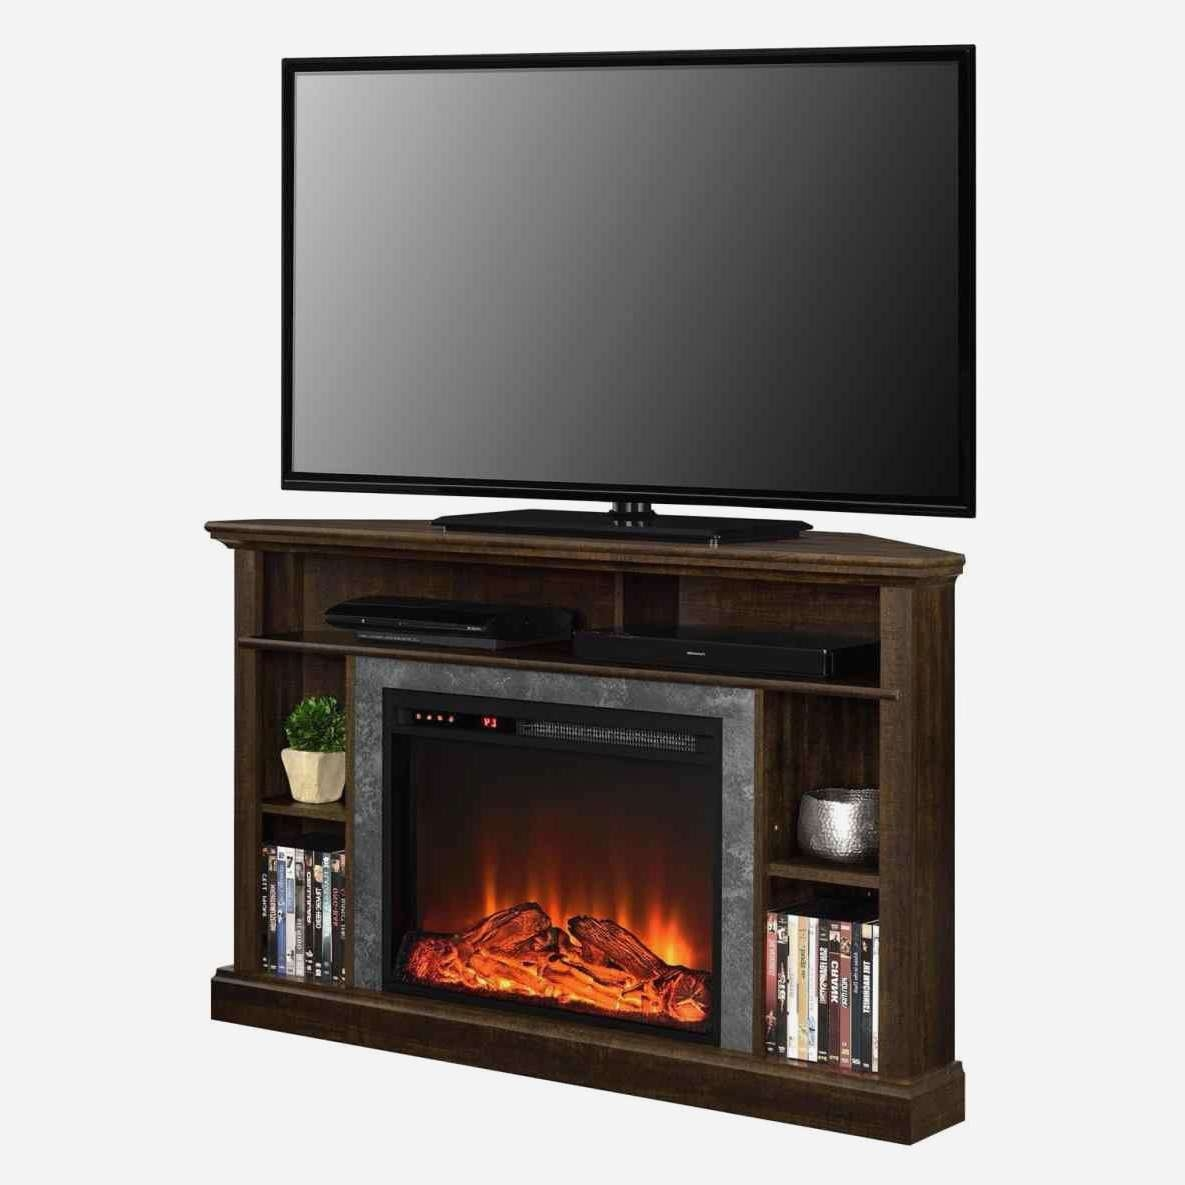 Fireplace : Fresh Fireplace Tv Stands Costco Artistic Color Decor In Classy Tv Stands (View 7 of 20)